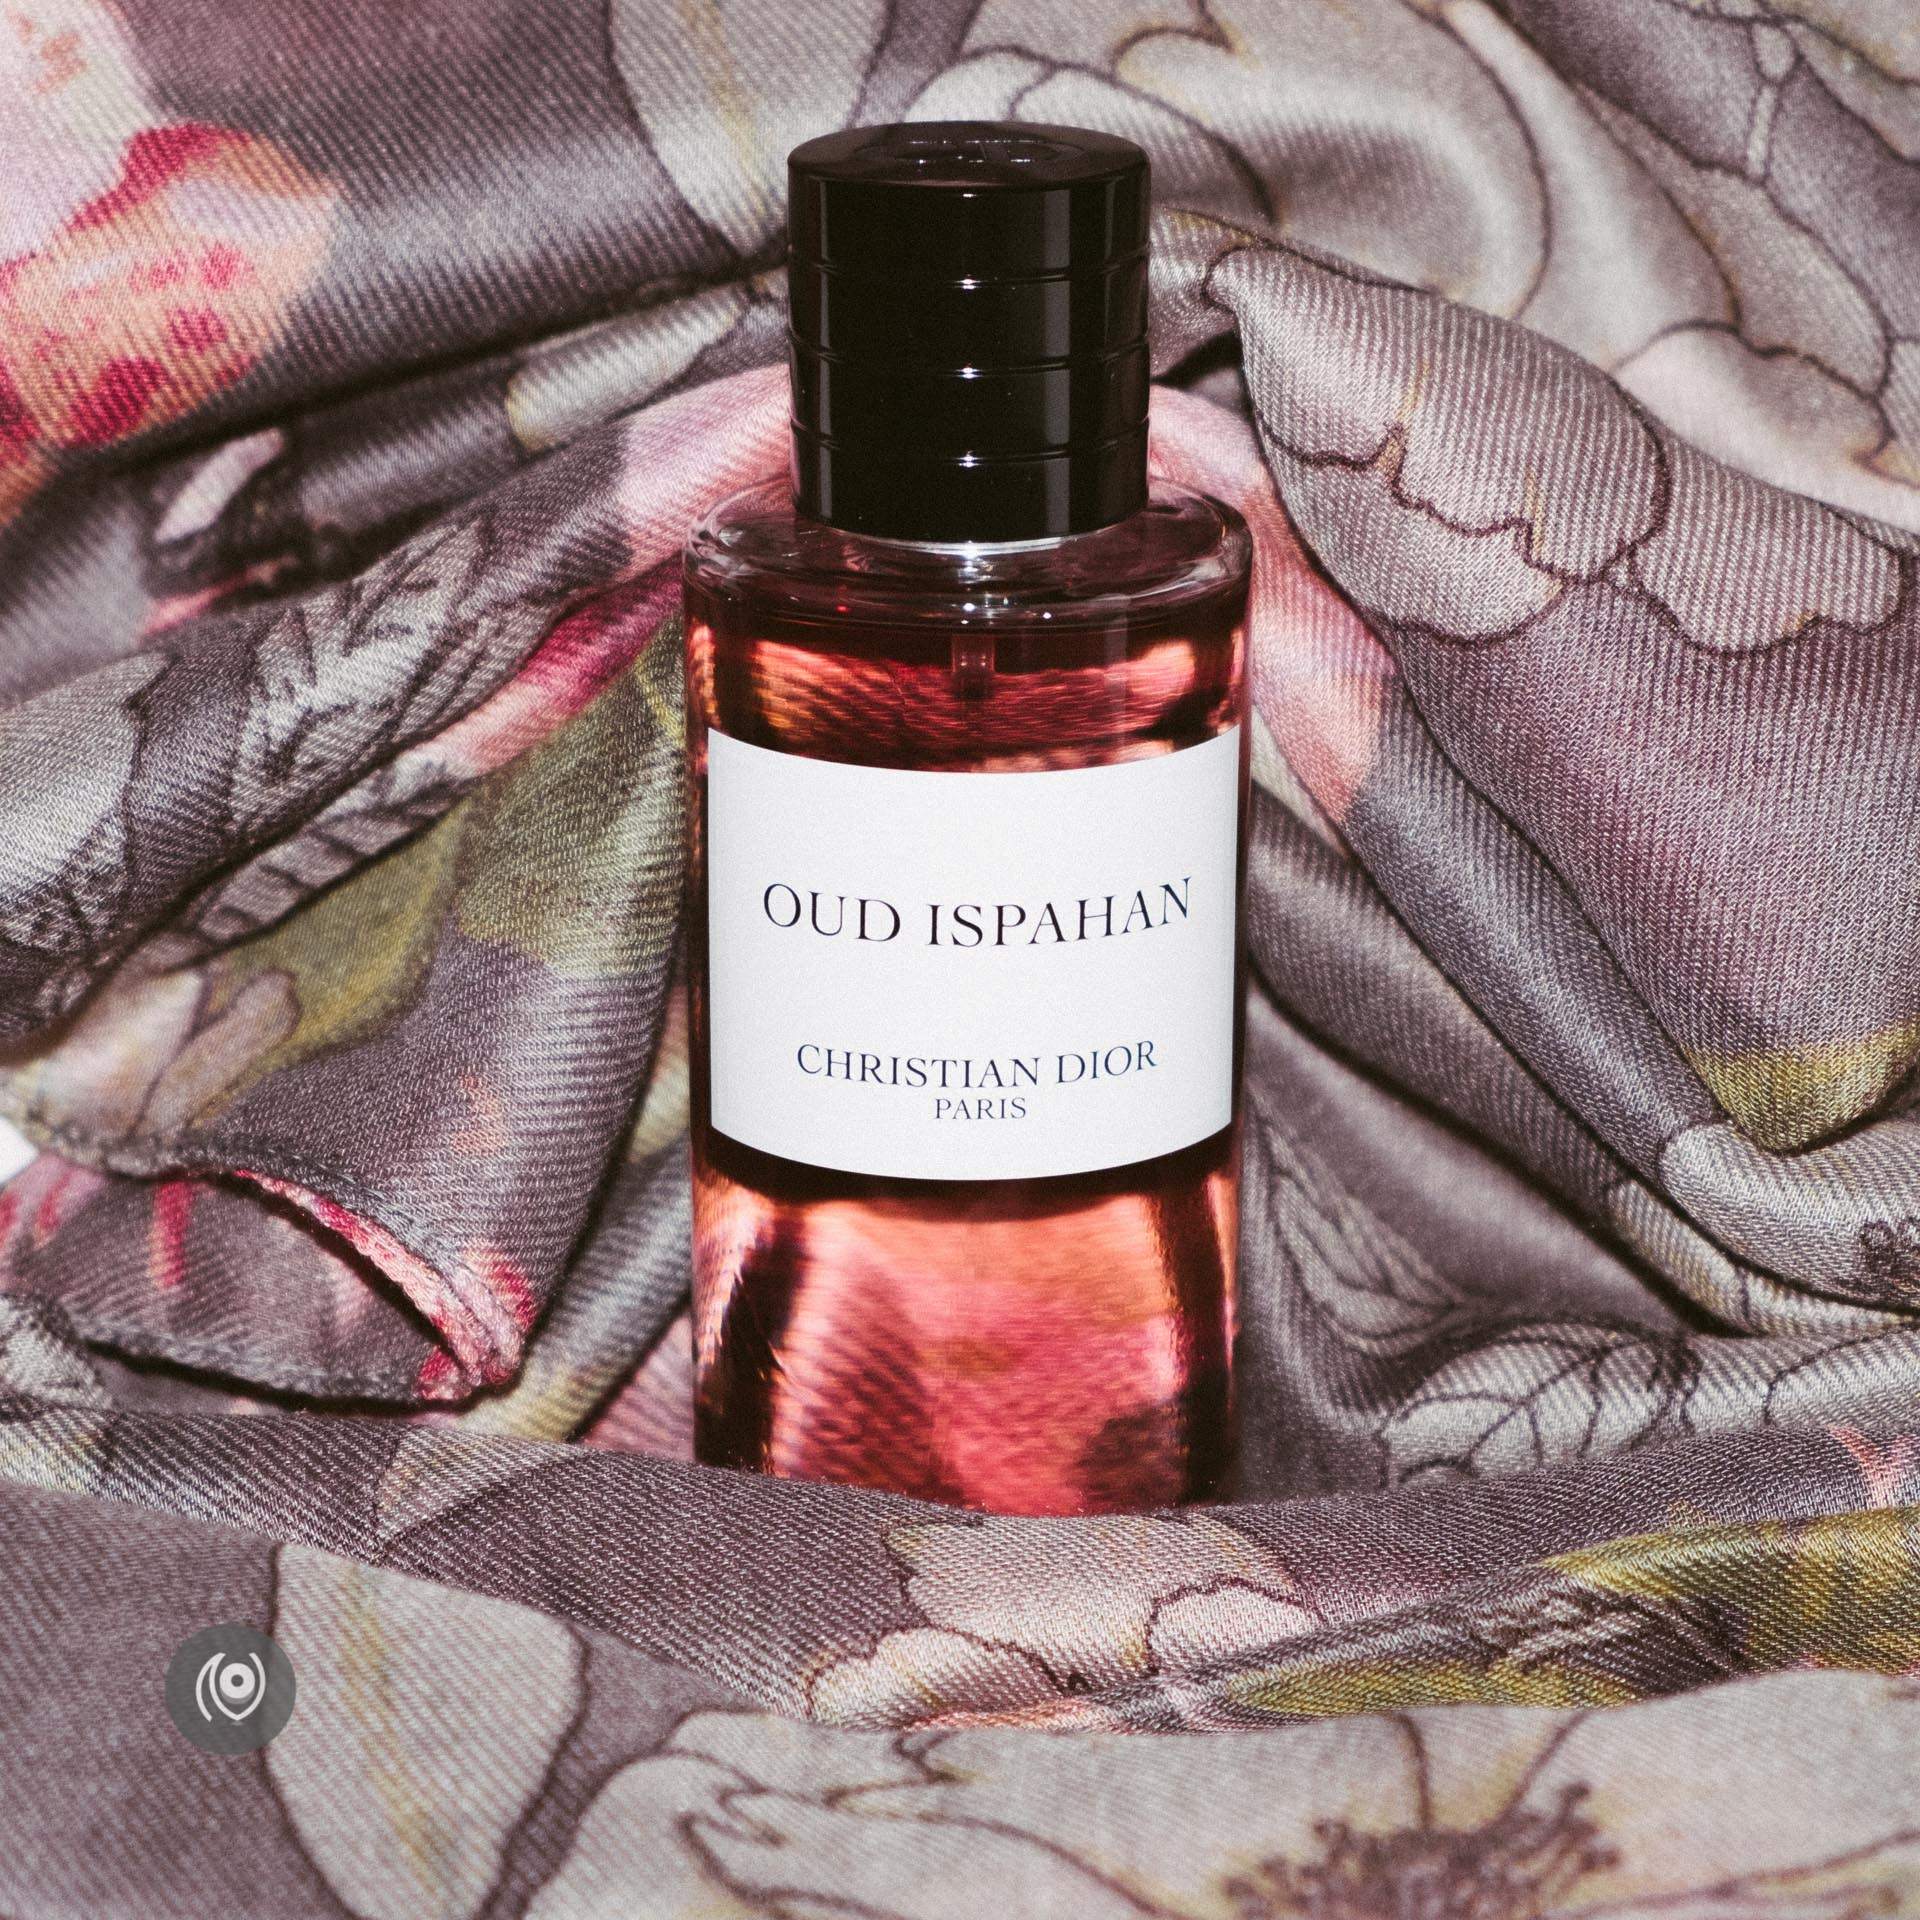 Oud Ispahan Christian Dior Parfum #EyesForLuxury Naina.co Luxury & Lifestyle, Photographer, Storyteller, Blogger